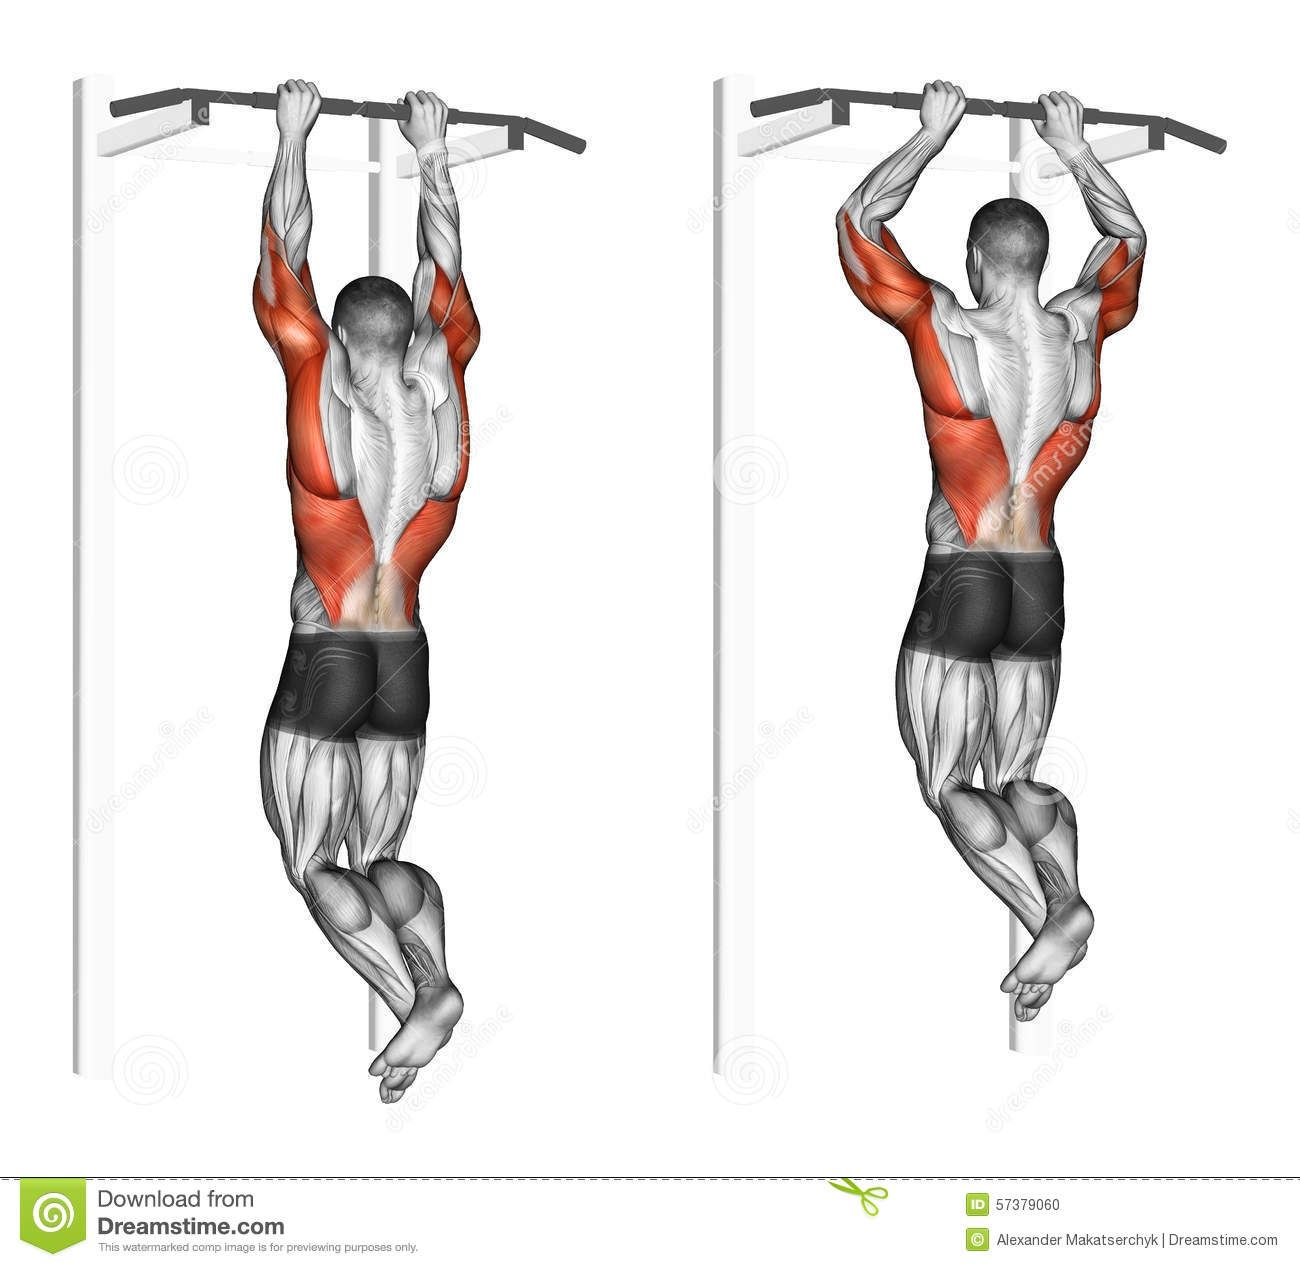 chin muscles diagram simple cycle power plant exercising pull ups brachialis bodybuilding target